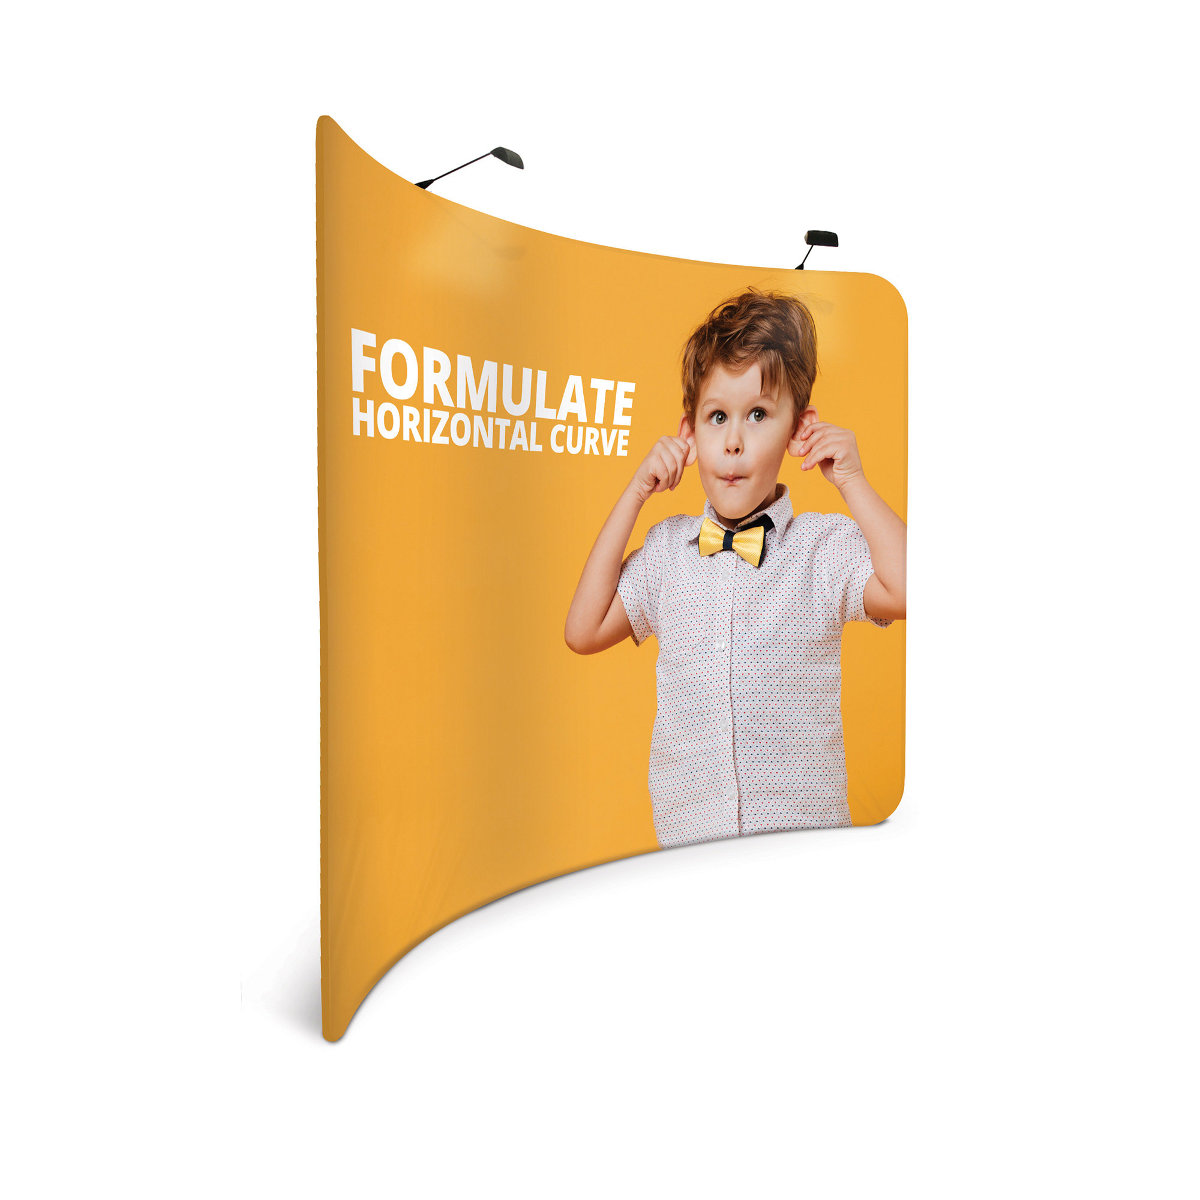 Formulate Horizontal Curve Stretch Fabric Display Exhibition Stand